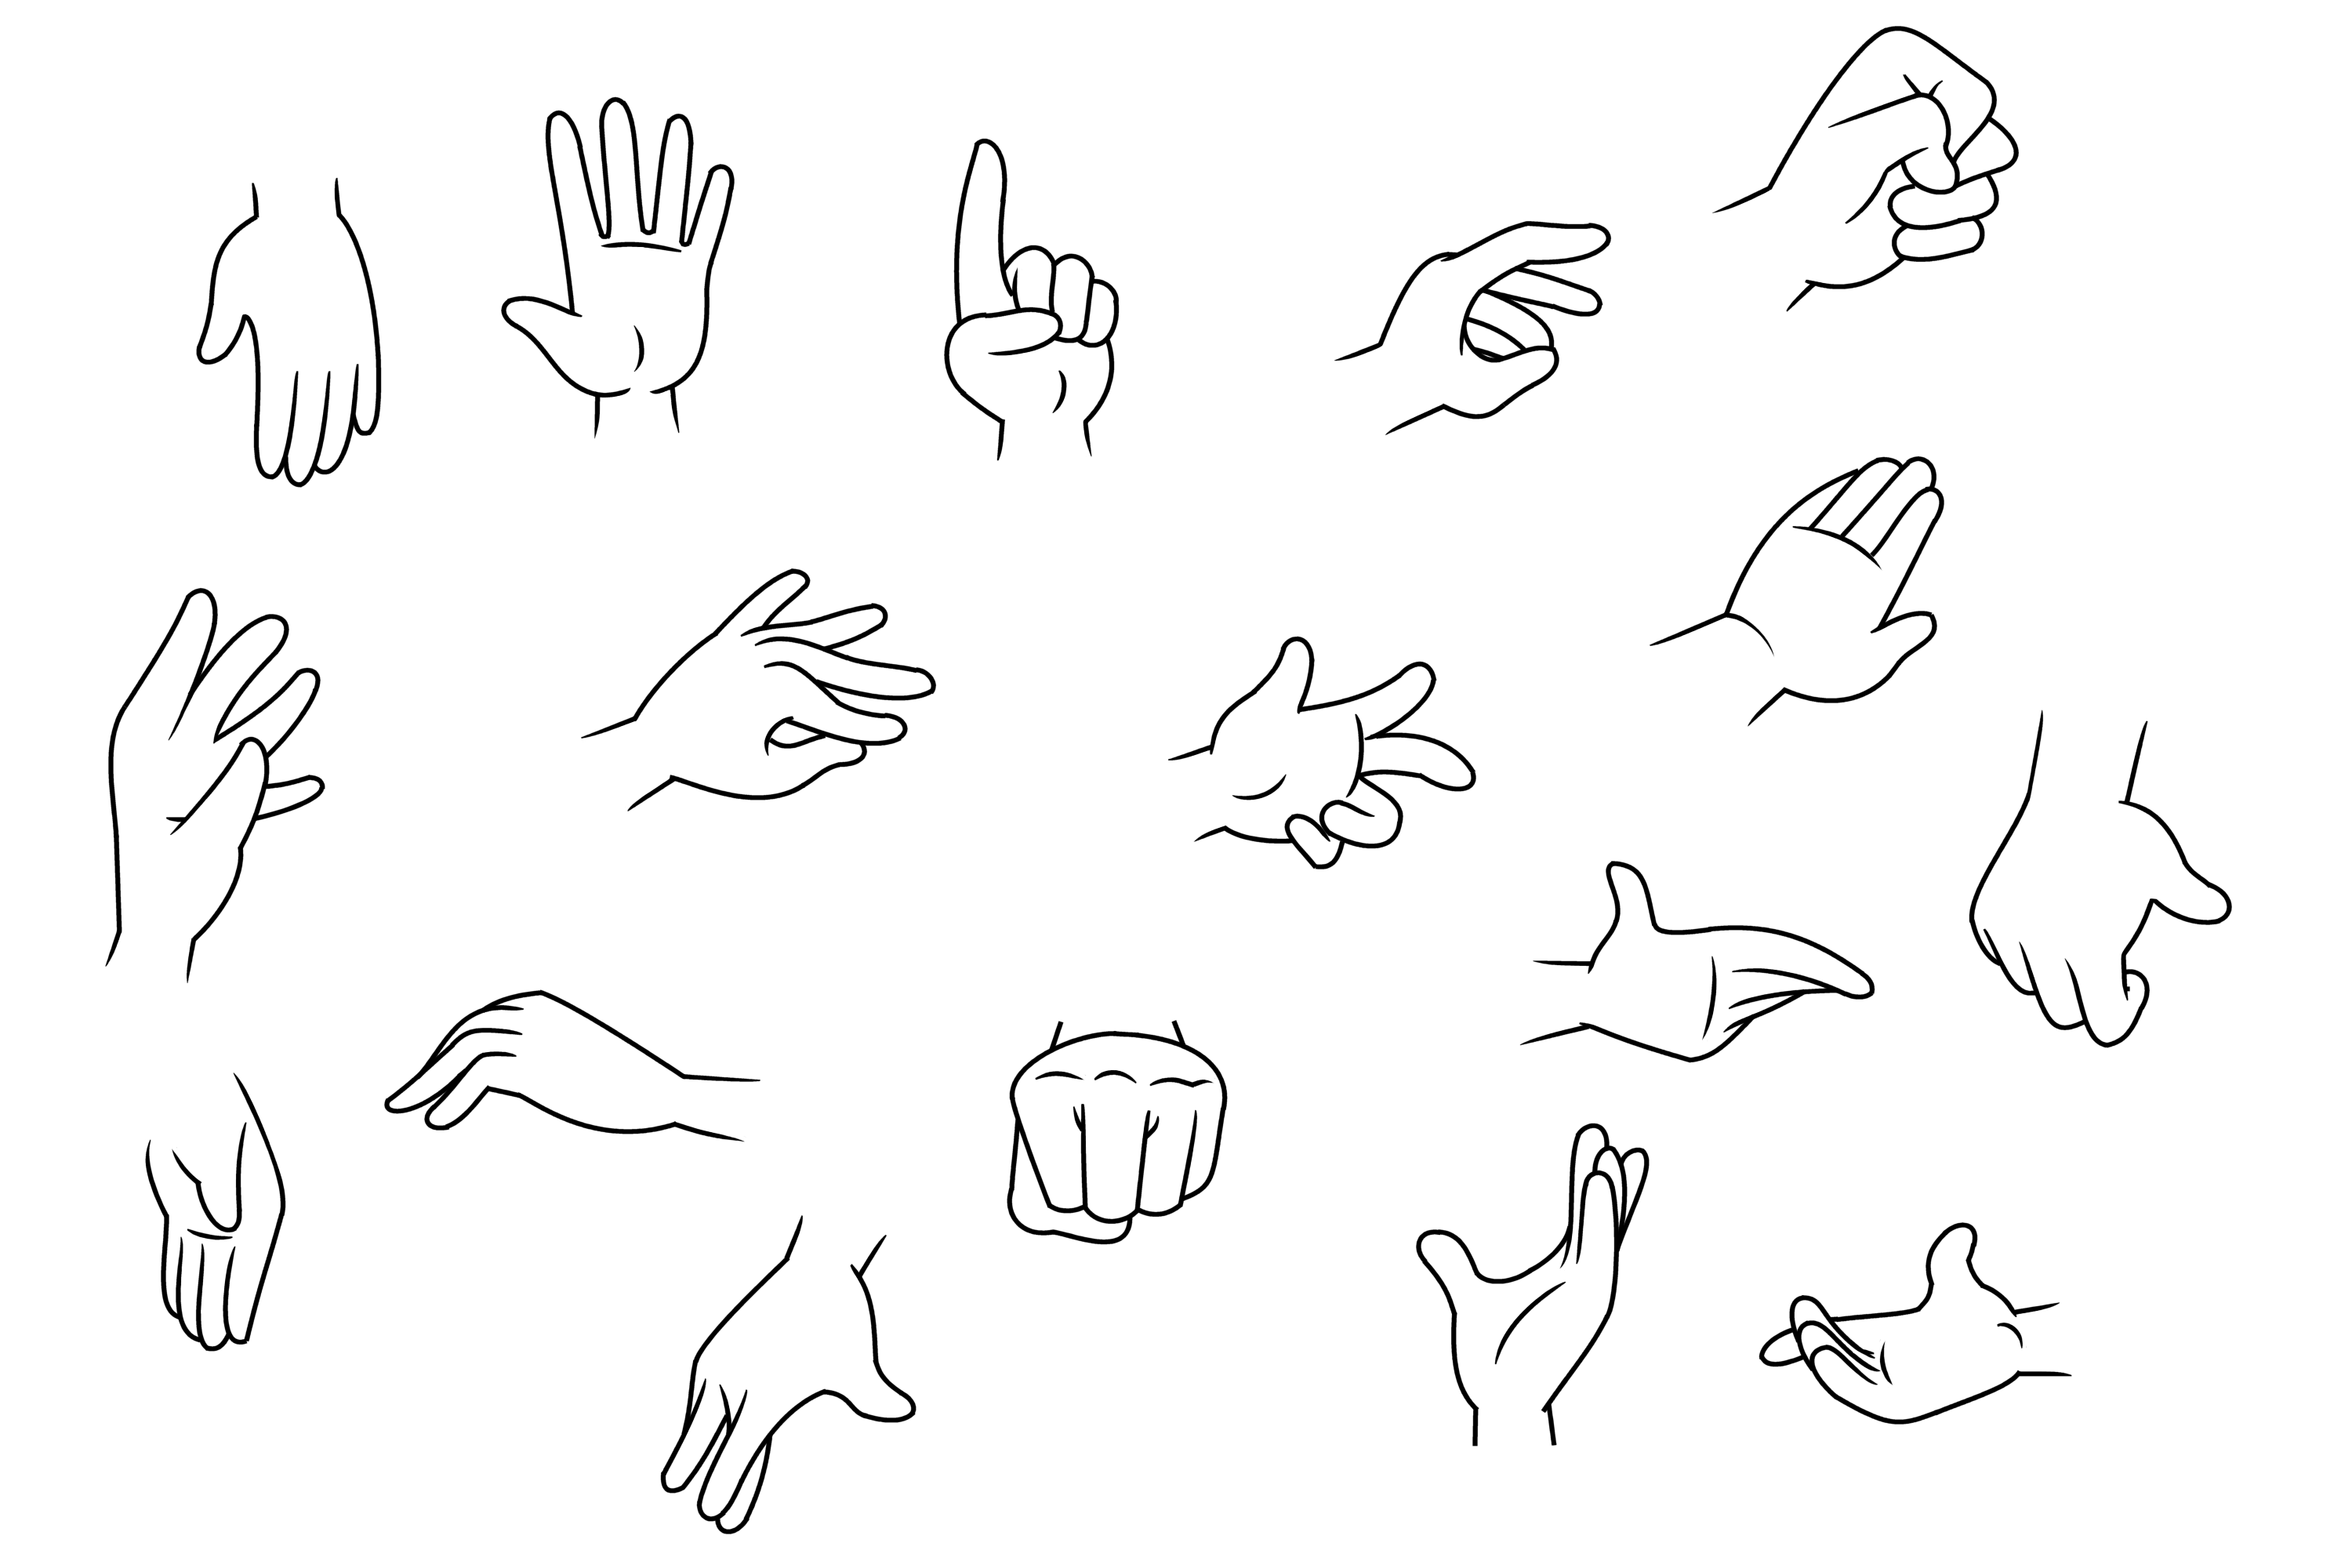 how to make a basic hand drawn animation